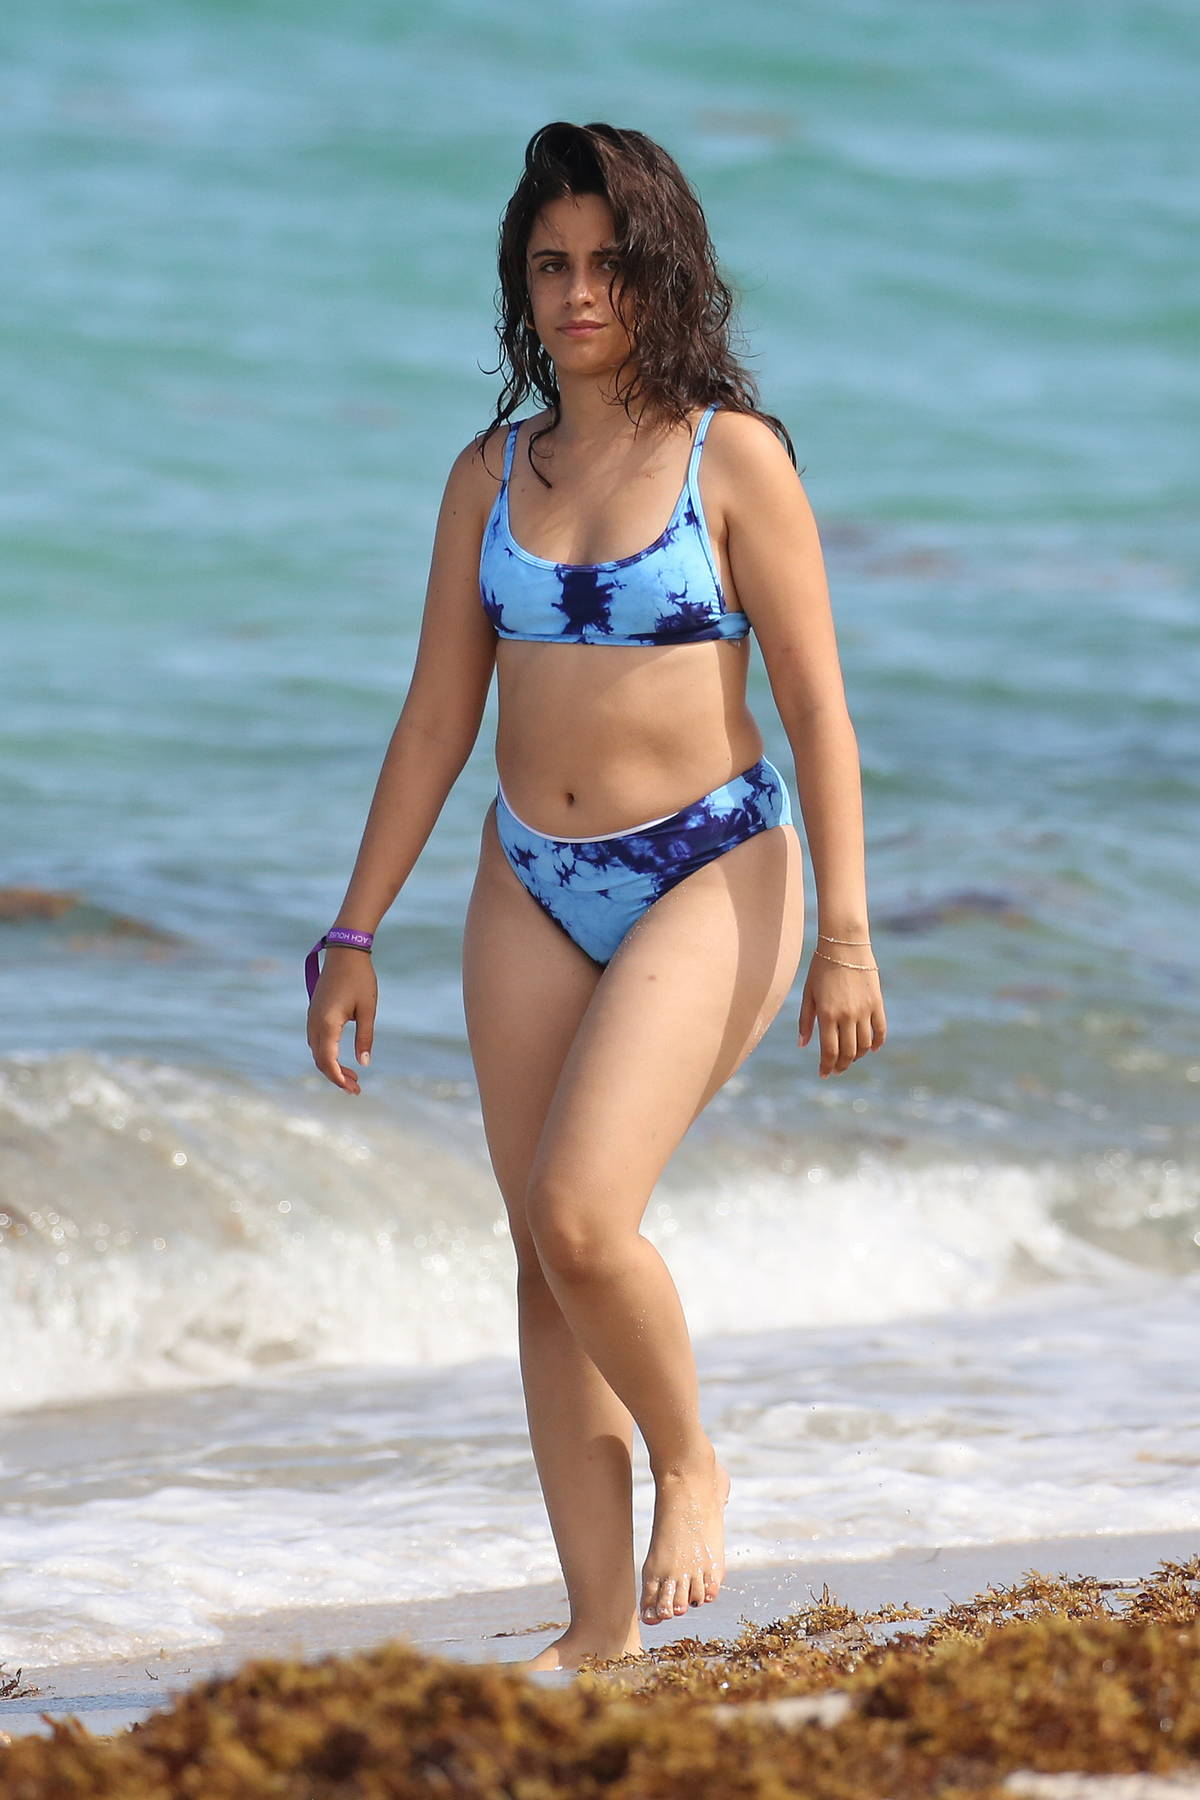 Camila Cabello shows off her curves in a blue bikini as she enjoys a beach day with Shawn Mendes in Miami, Florida